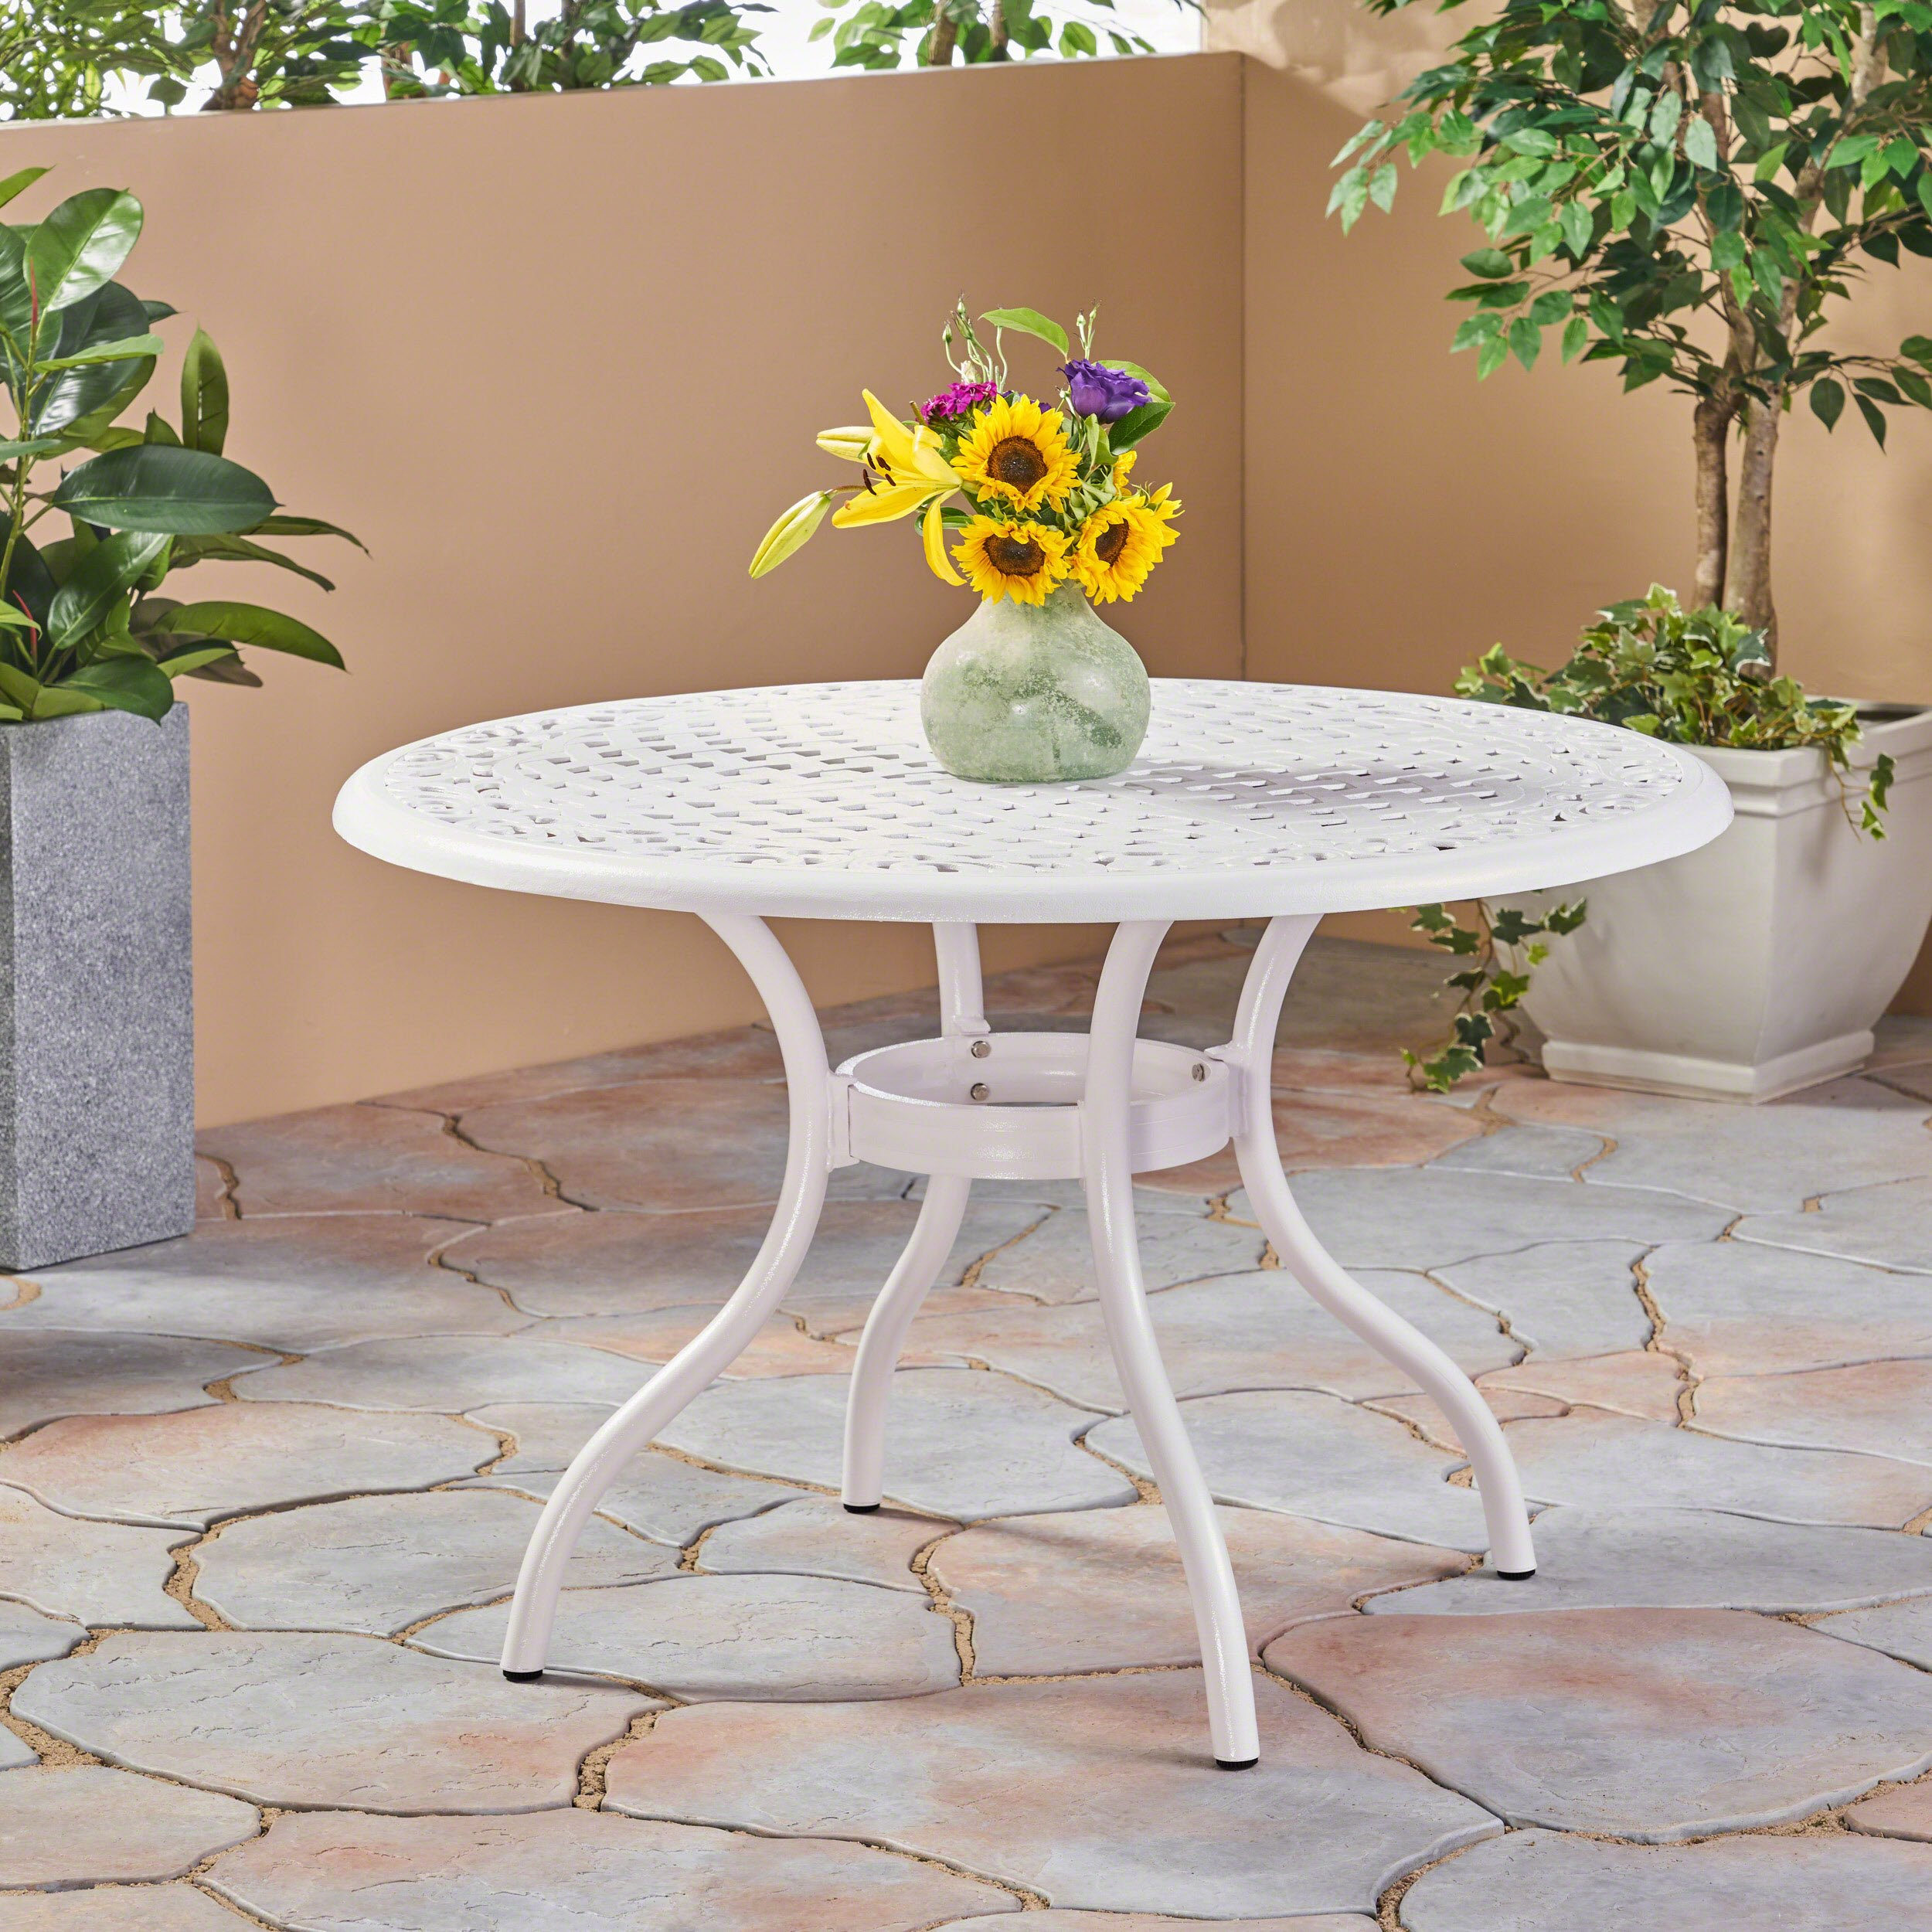 Great Deal Furniture 305134 Simon Outdoor Aluminum Round Dining Table, White